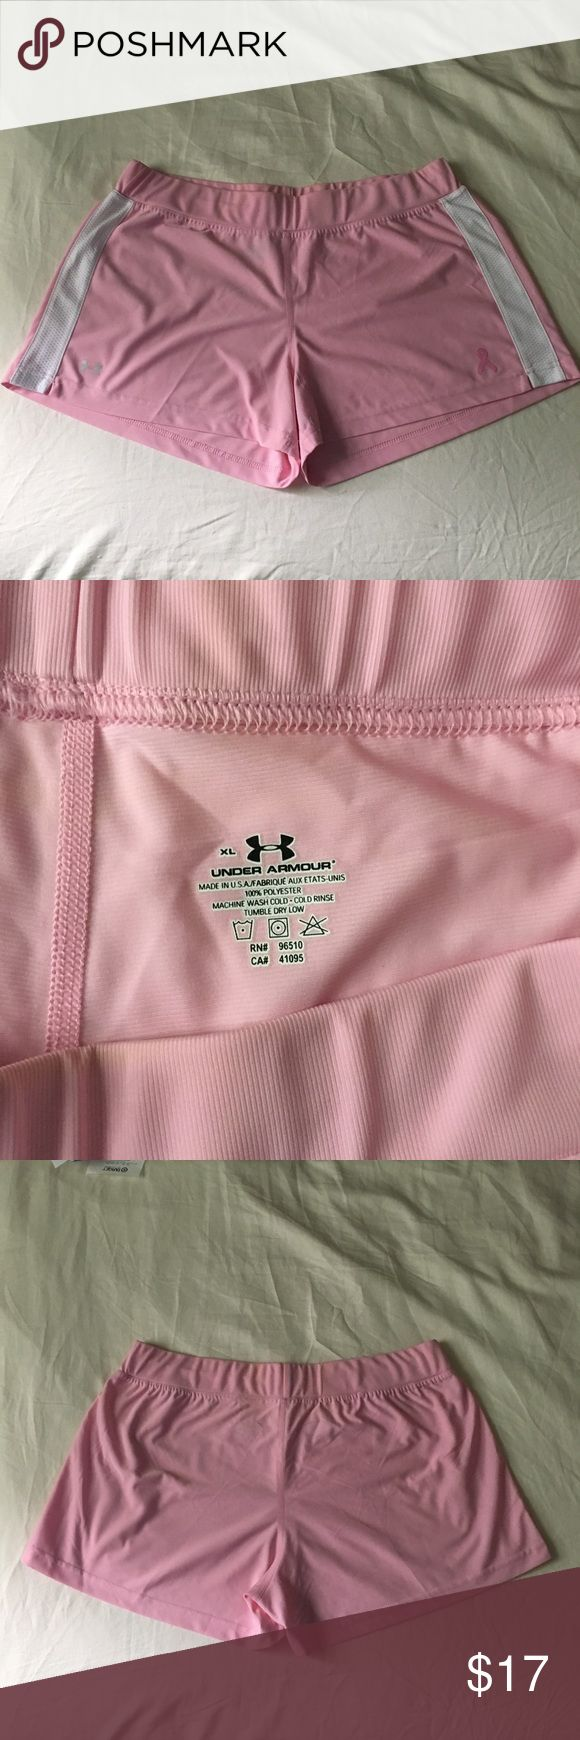 Under Armour Women's pink shorts XL Under Armour women's breast cancer awareness pink shorts. 100% polyester.   Size XL.   Purchased a few years ago, never worn (I was using them as inspiration to shed a few pounds!!) and then put in storage in a chest in my closet.   There is a VERY light discoloration on a couple parts of the waistband but it's not very noticeable. Cheaper on Ⓜ️! Under Armour Shorts